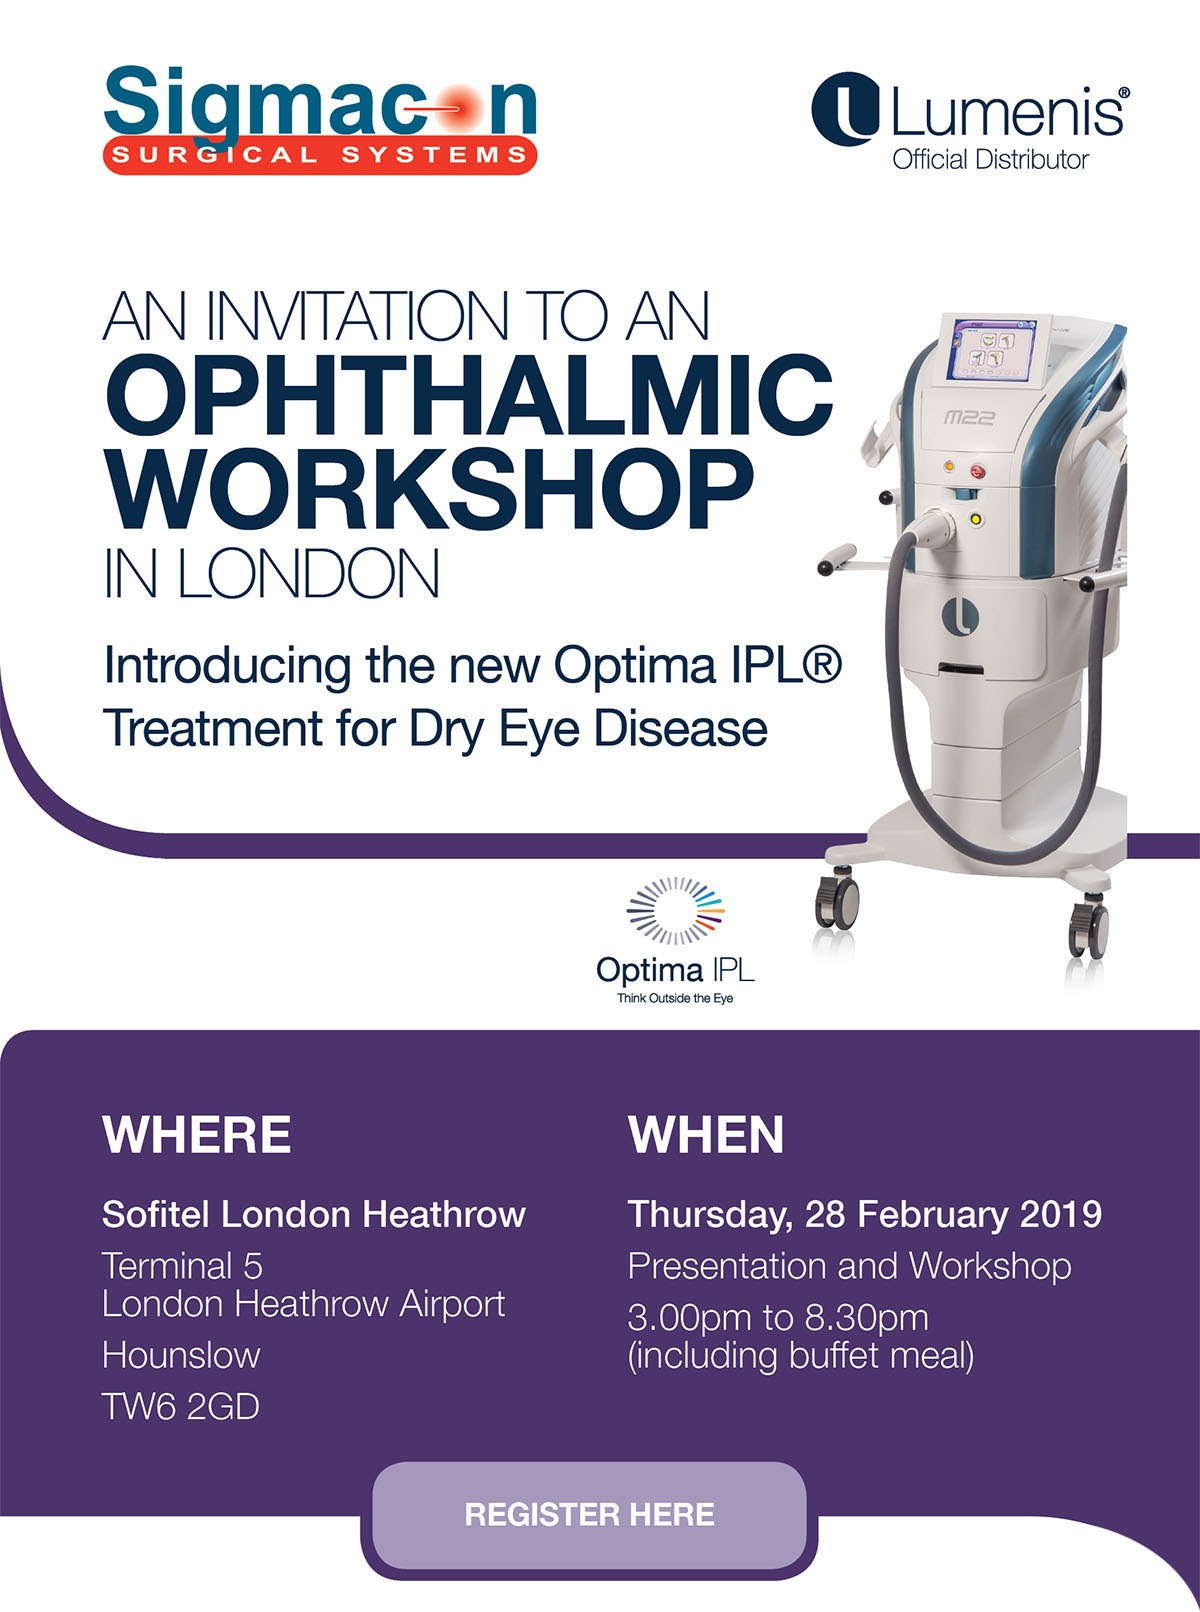 Ophthalmic Workshop in London